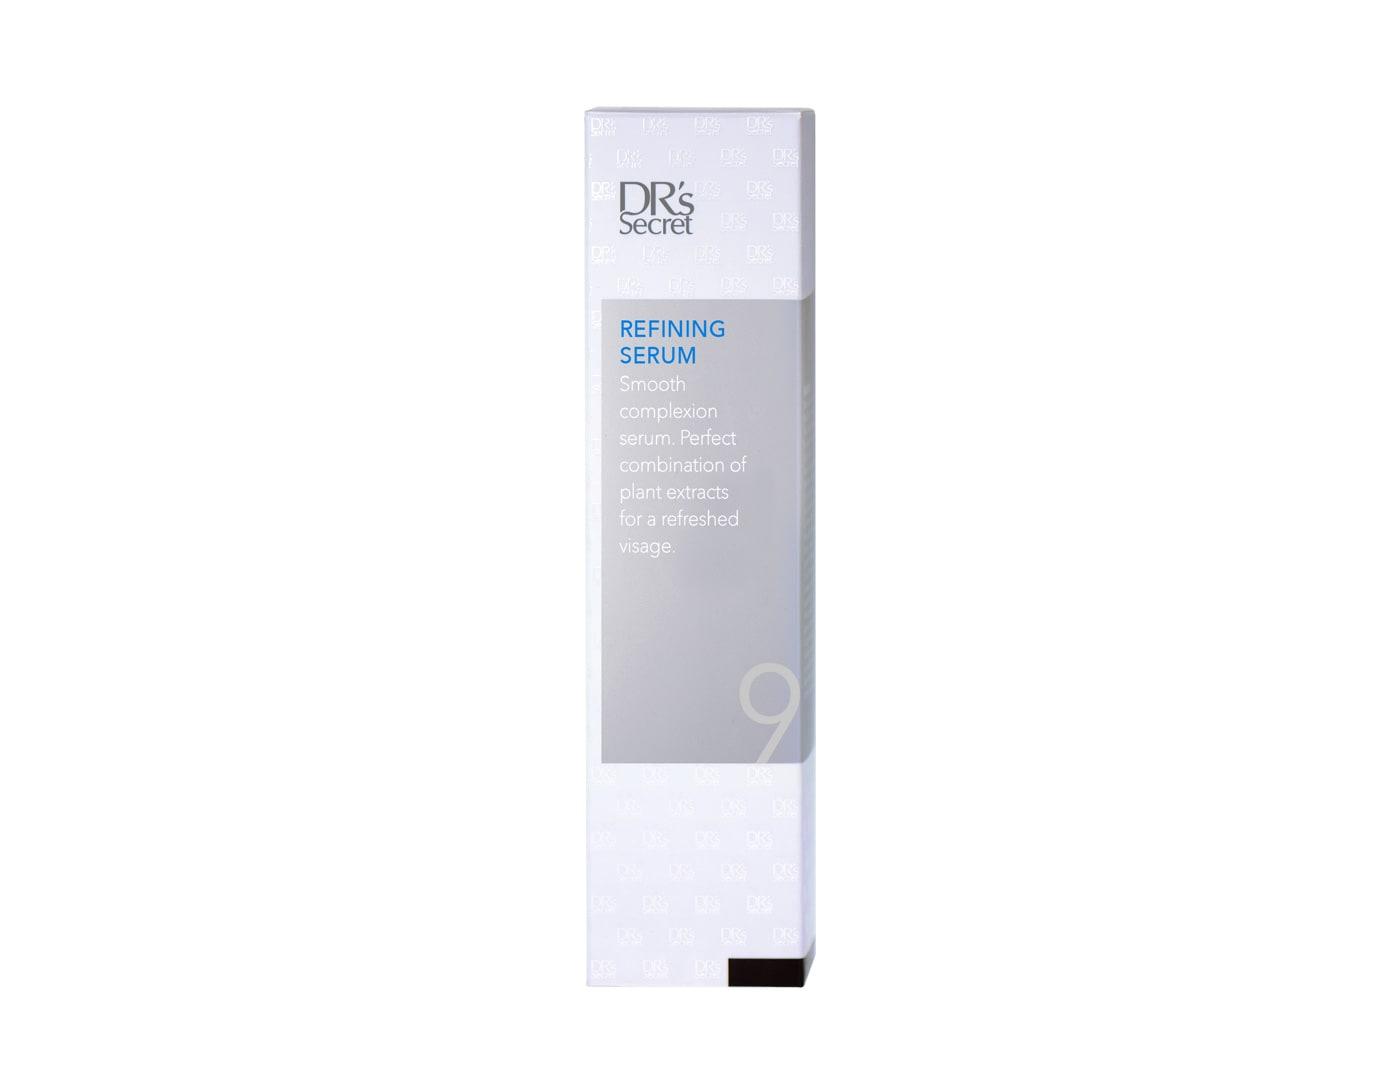 DR's Secret Refining Serum 9 box front packaging